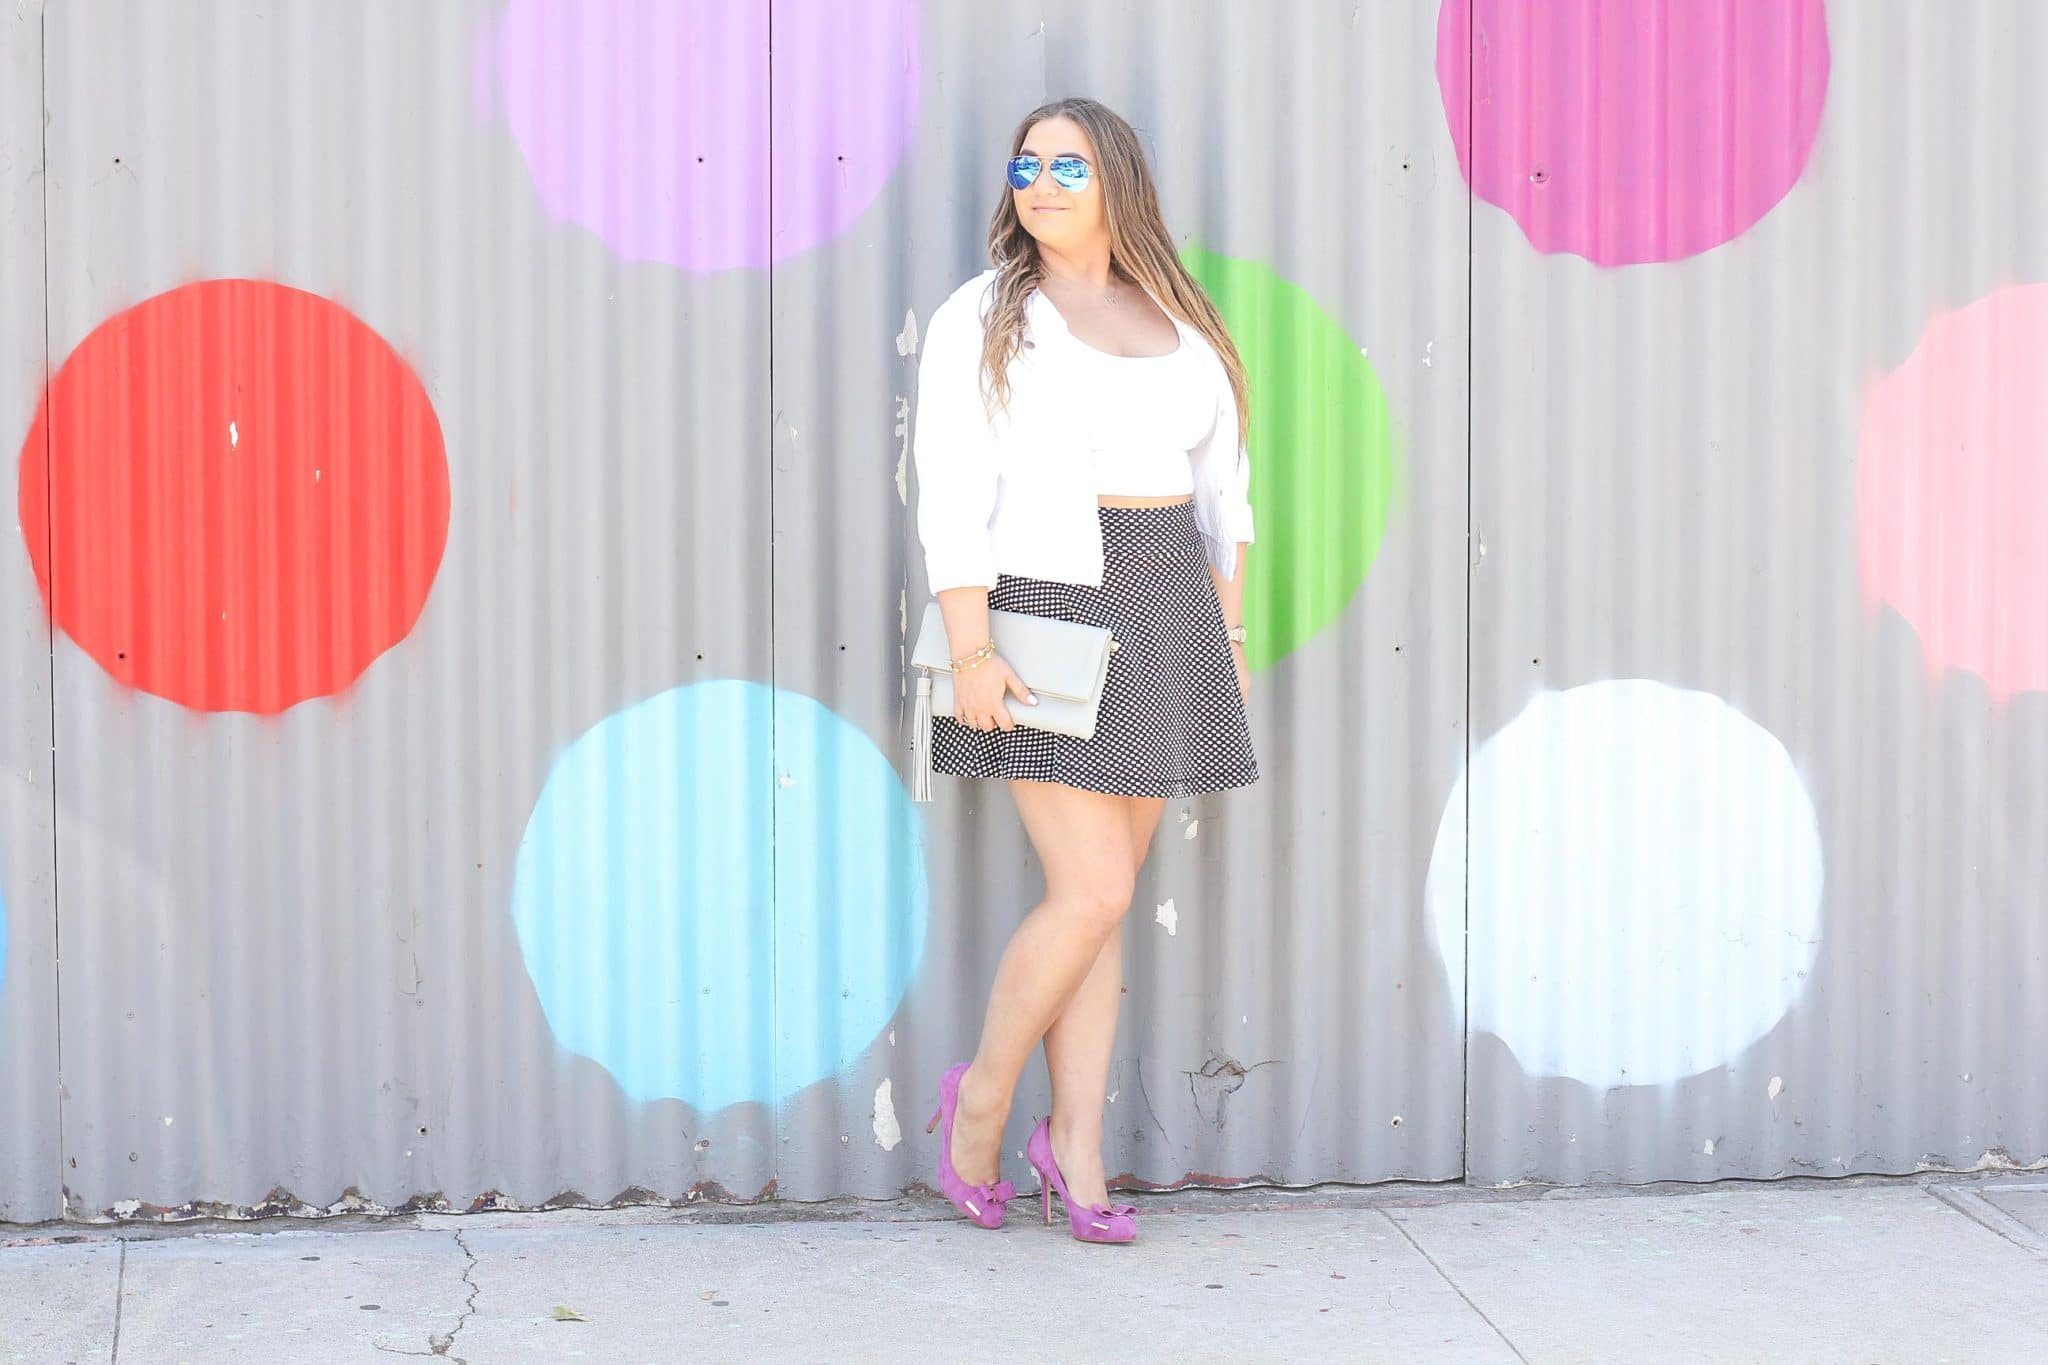 missyonmadison, polka dot skirt, polka dot wall, la blogger, fall style, fall fashion, fall blogger, currently wearing, melissa tierney, melissa tierney instagram, pink pumps, gigi new york, gigi new york clutch, fuschia pumps, pink bow pumps, michael kors heels, michael kors pumps, polka dot skirt, white moto jacket, white crop top, white short sleeve crop top, how to style polka dots,